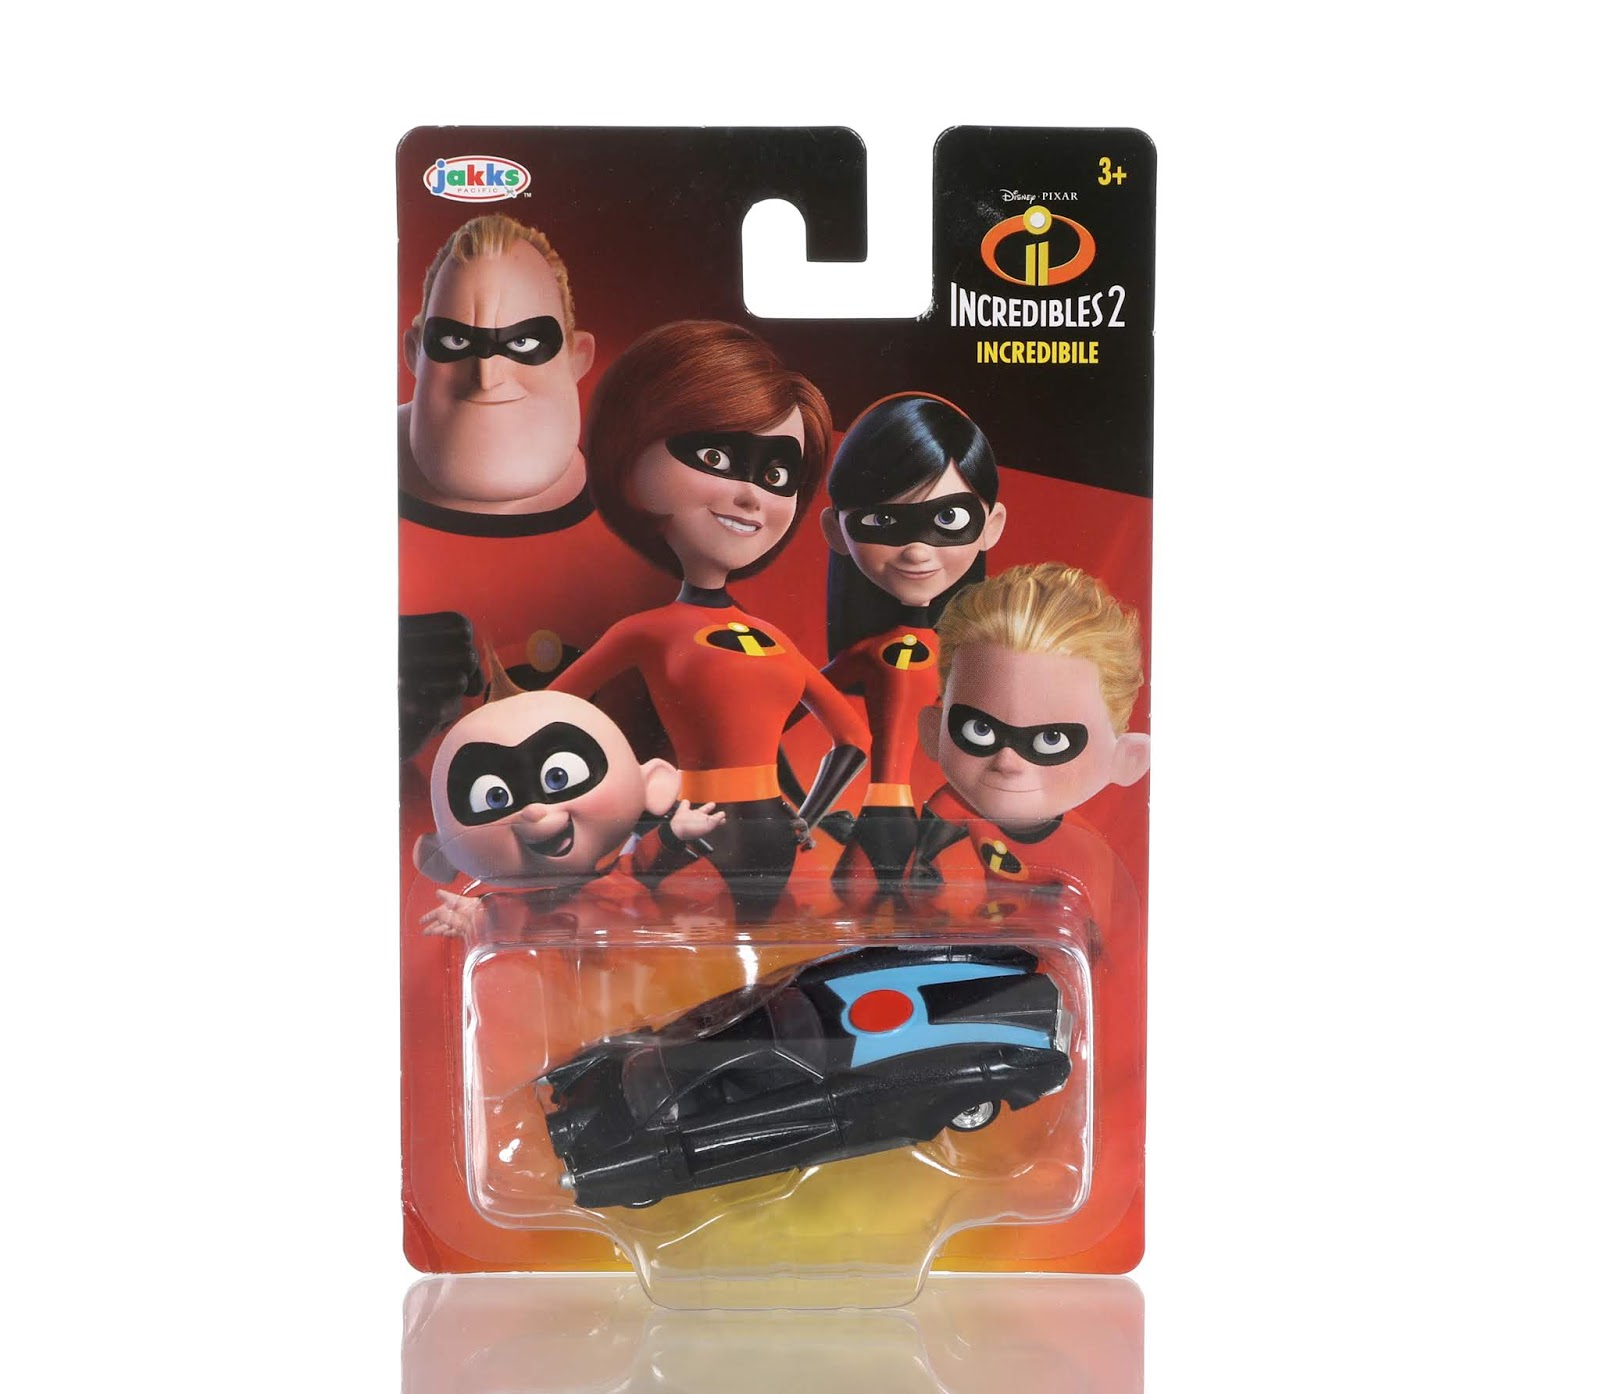 Incredibles 2 Diecast Vehicle Collection by Jakks Pacific